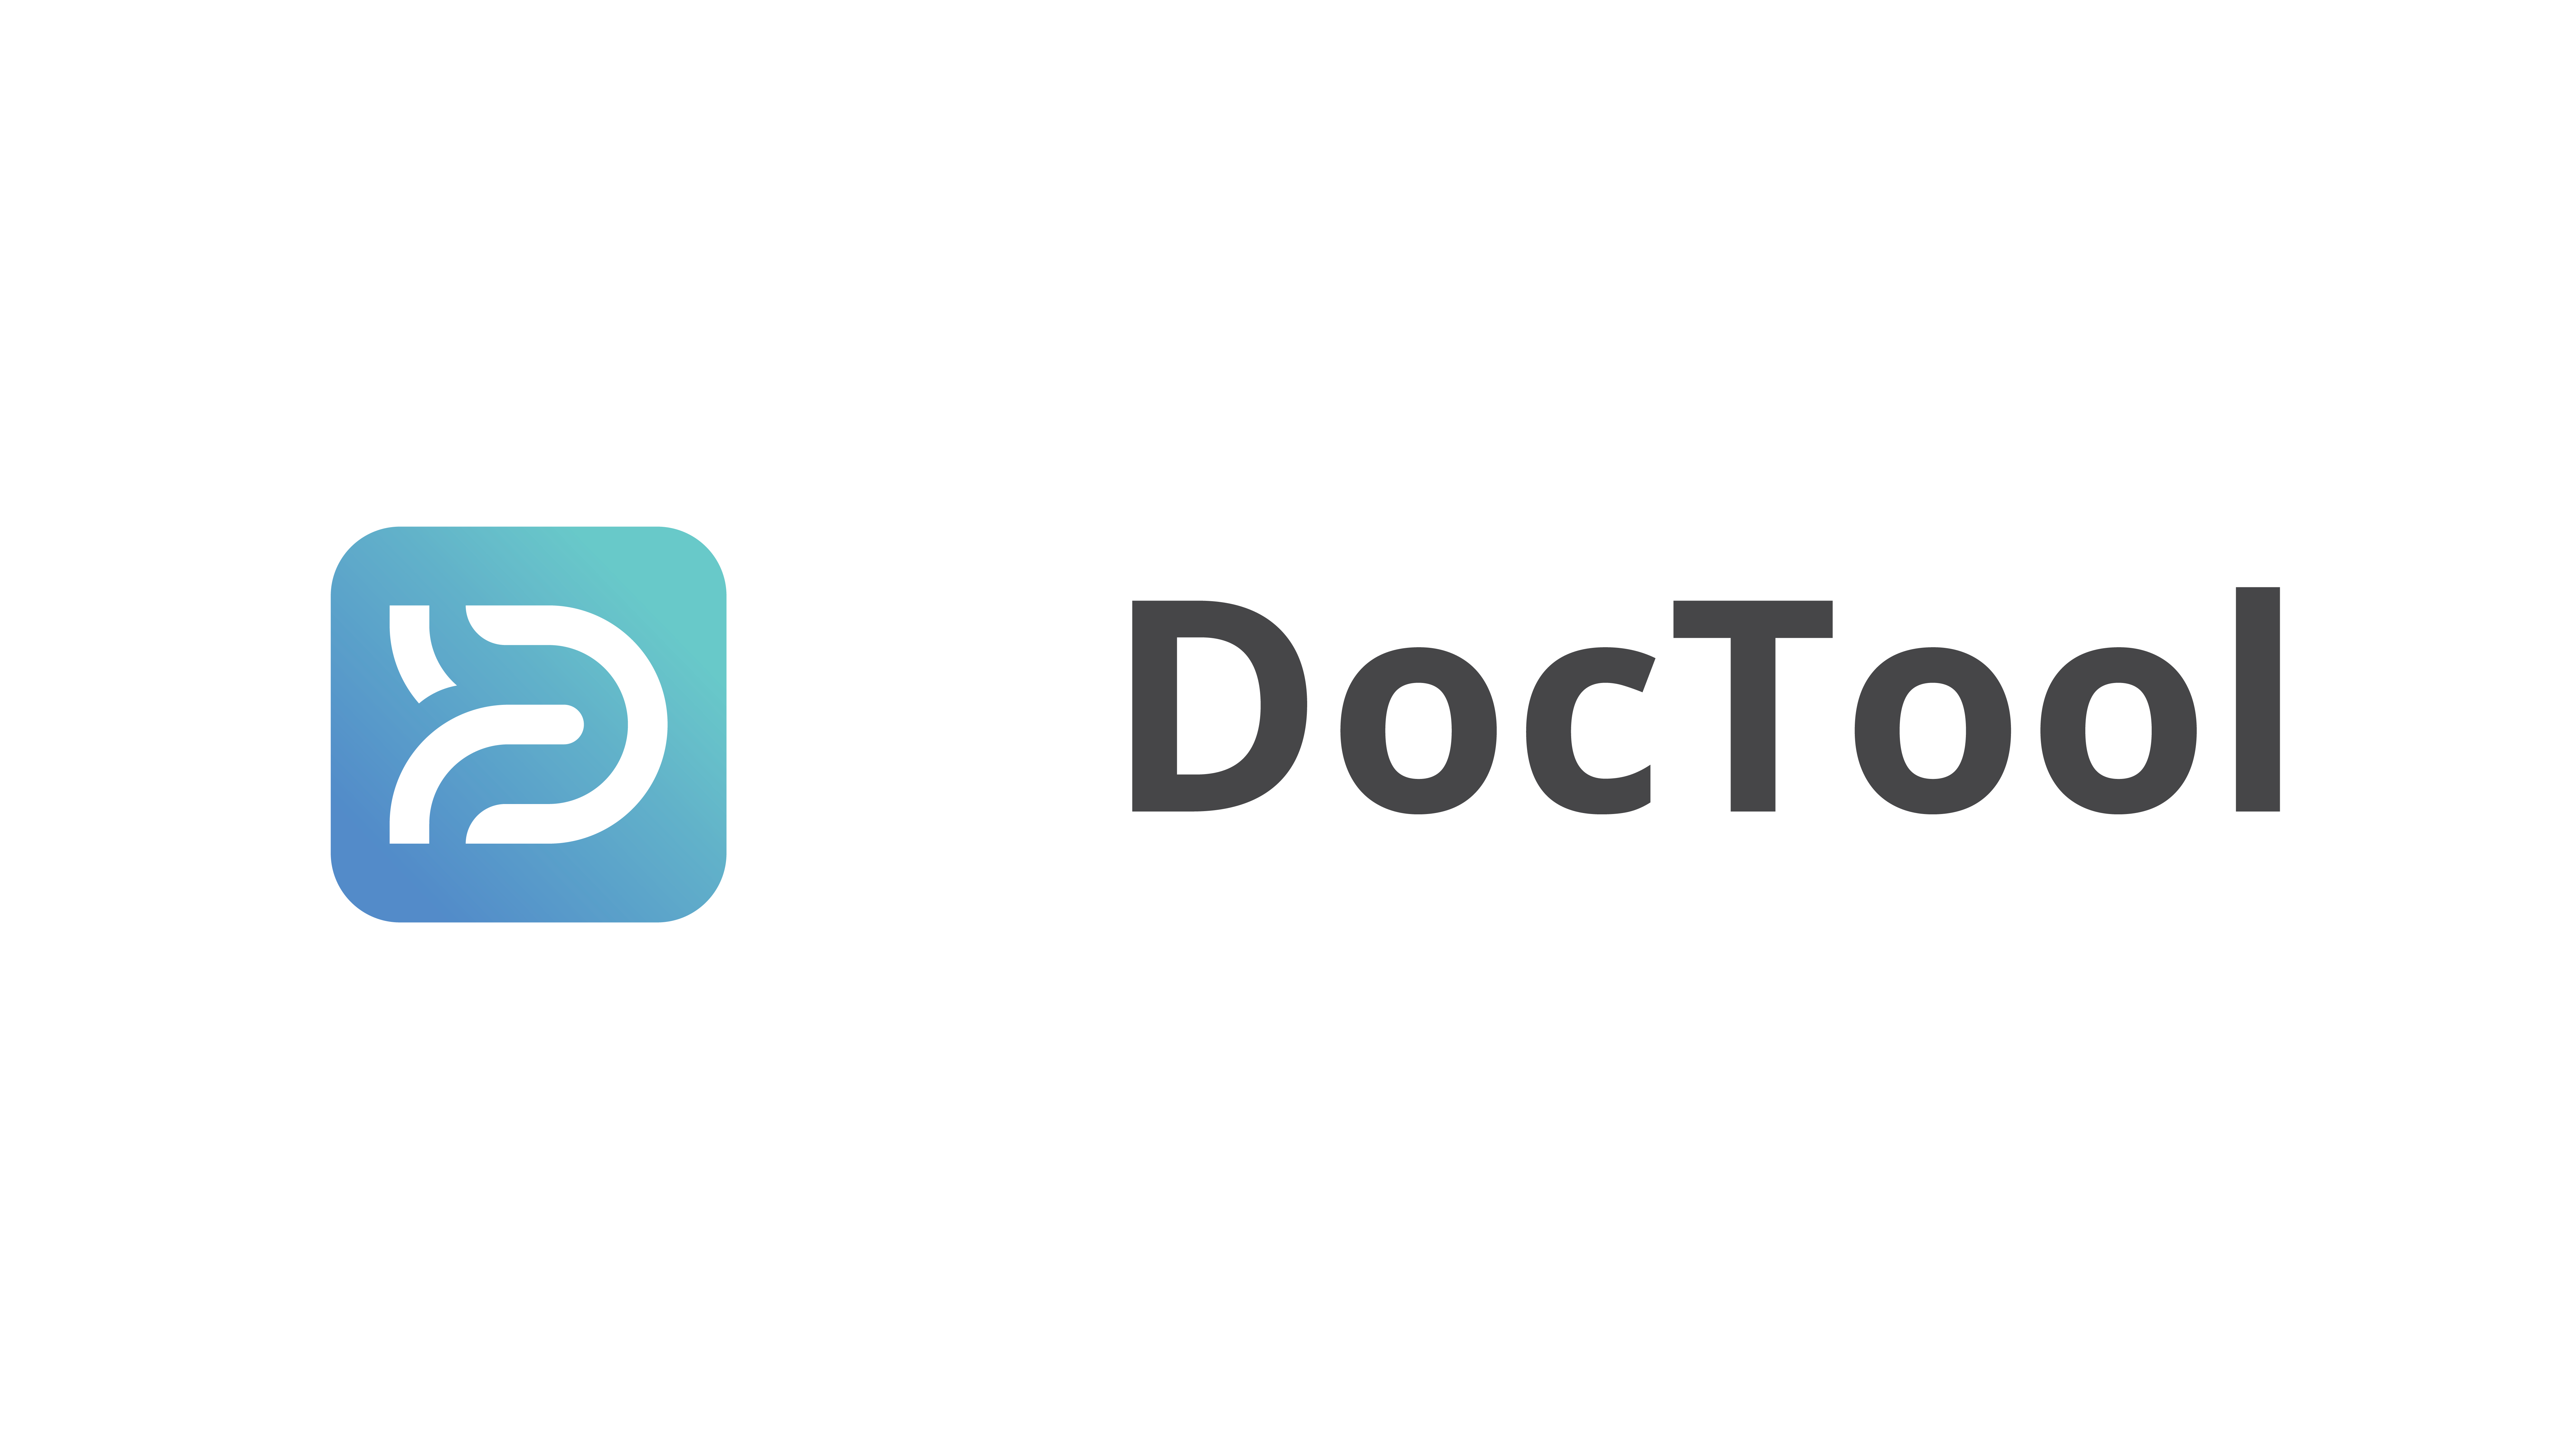 Create a cool design for an medical app